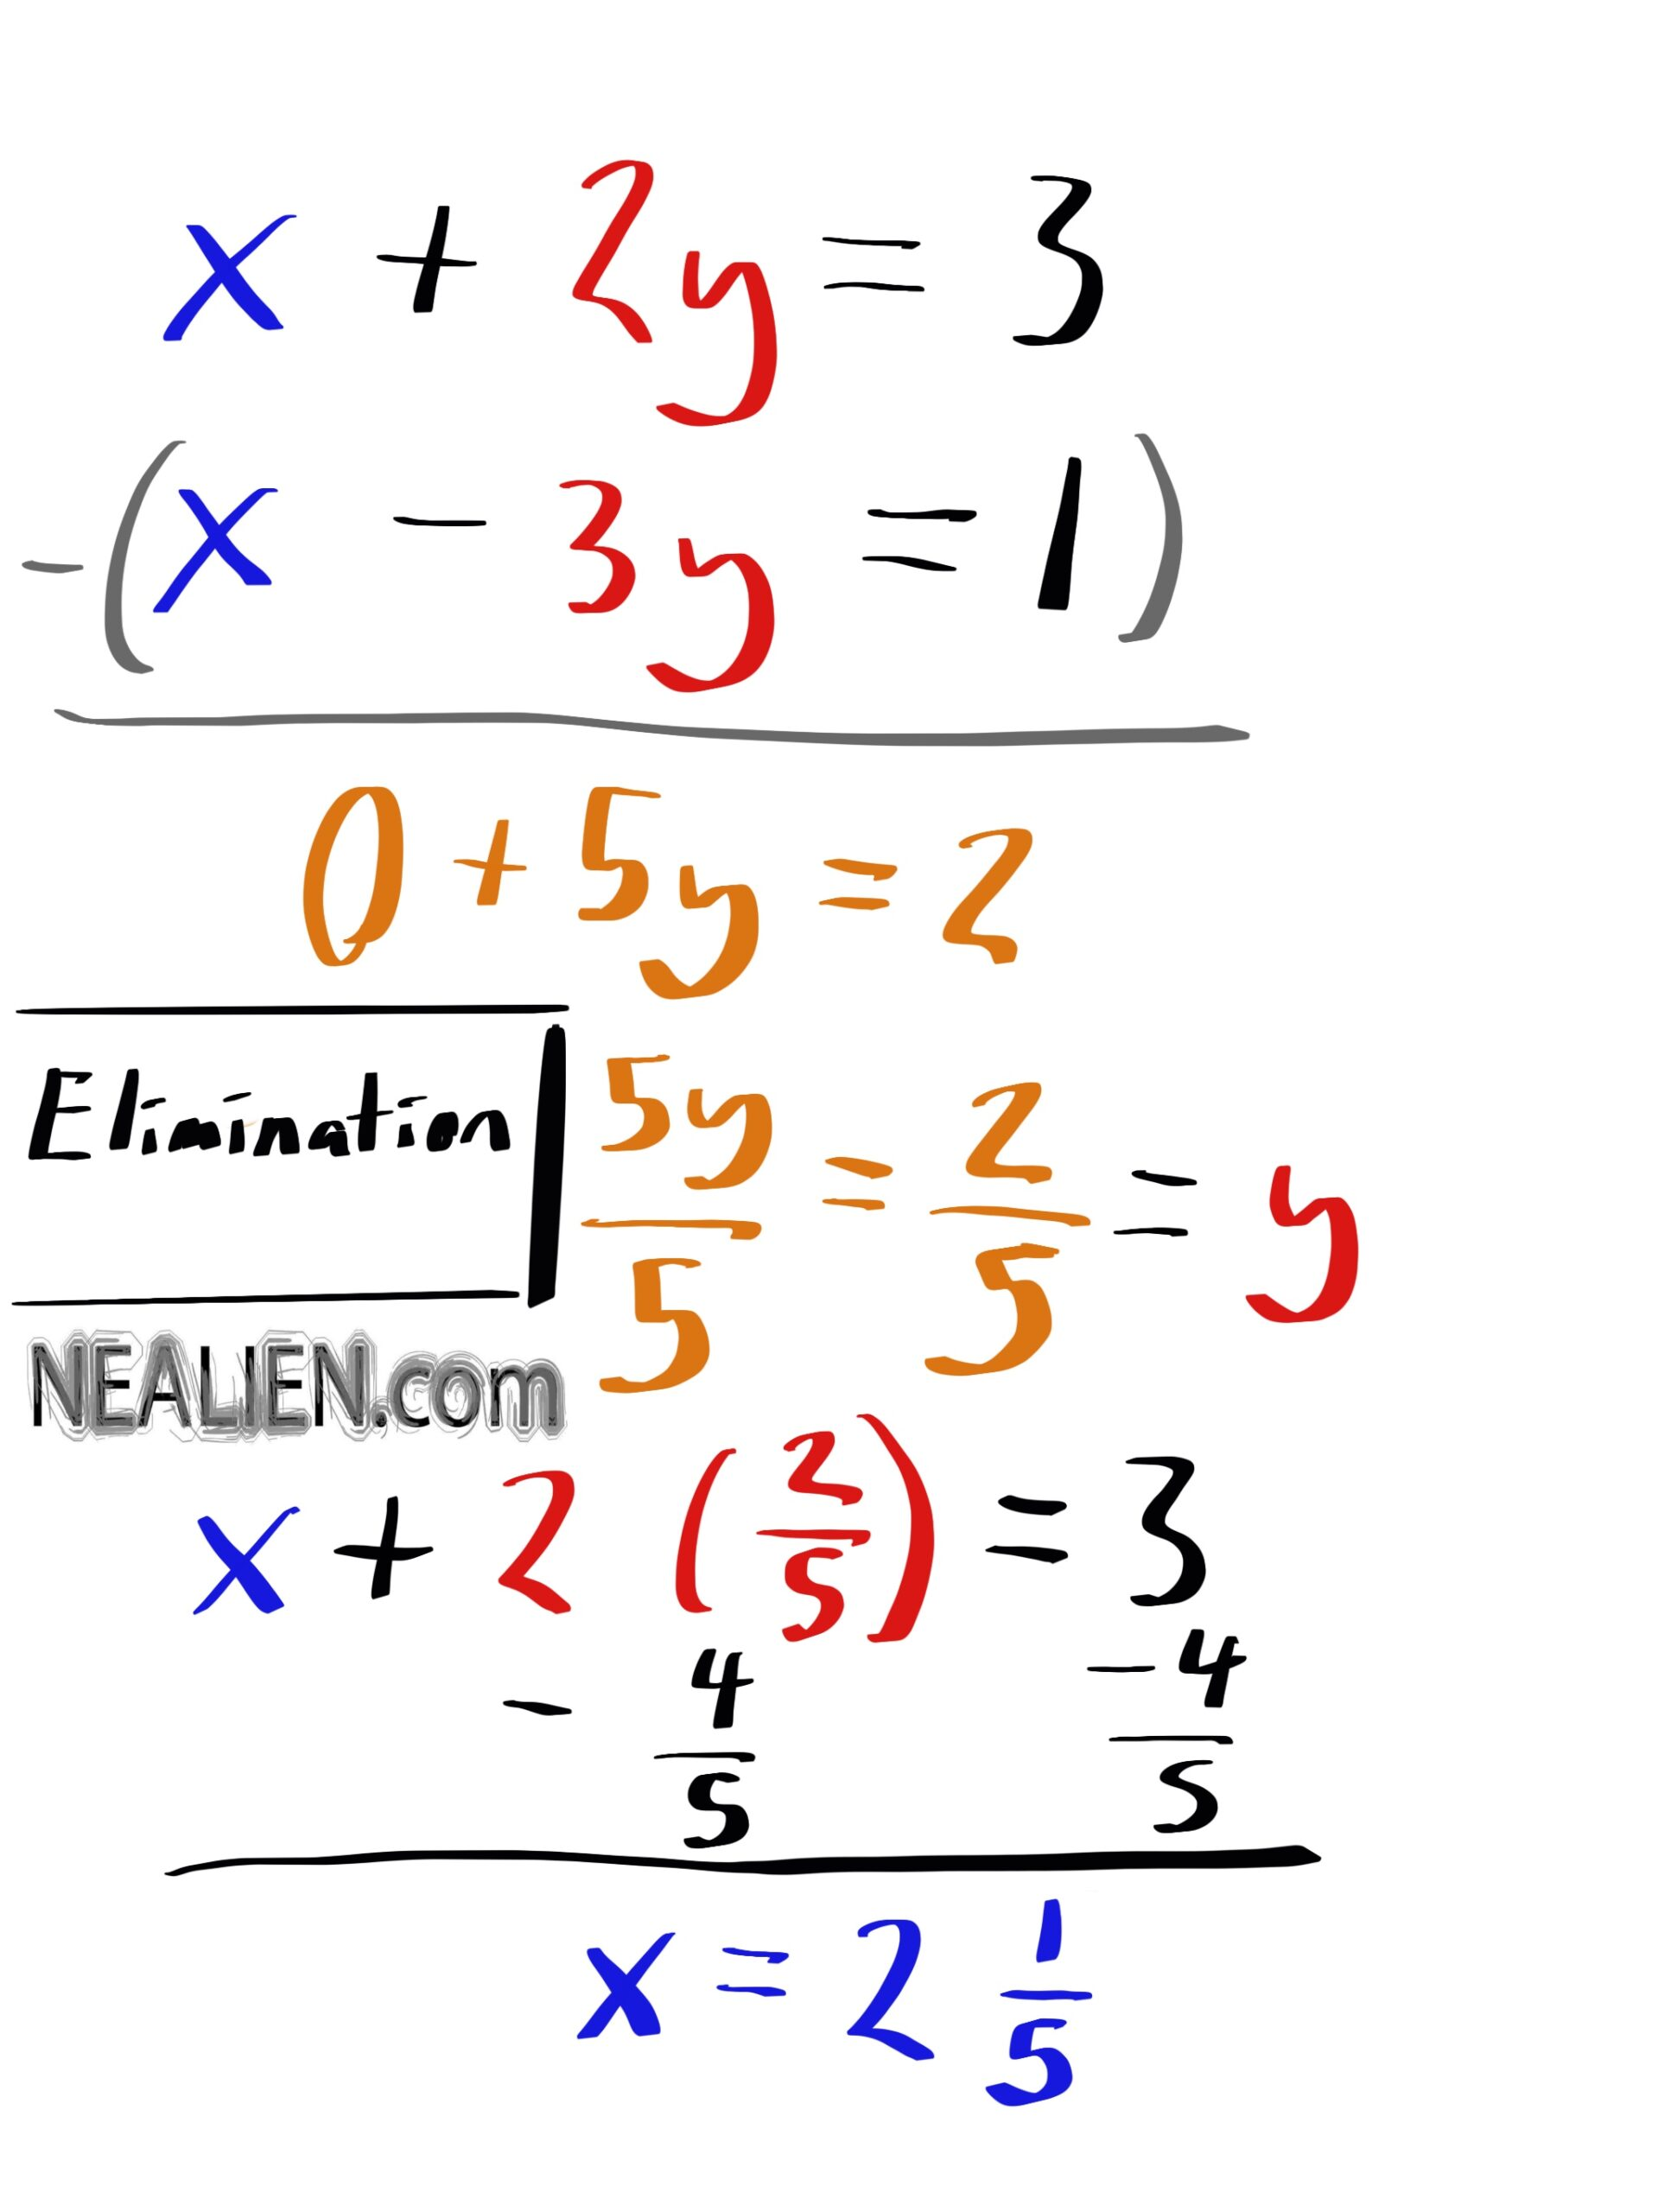 Elimination Method for Systems of Equations